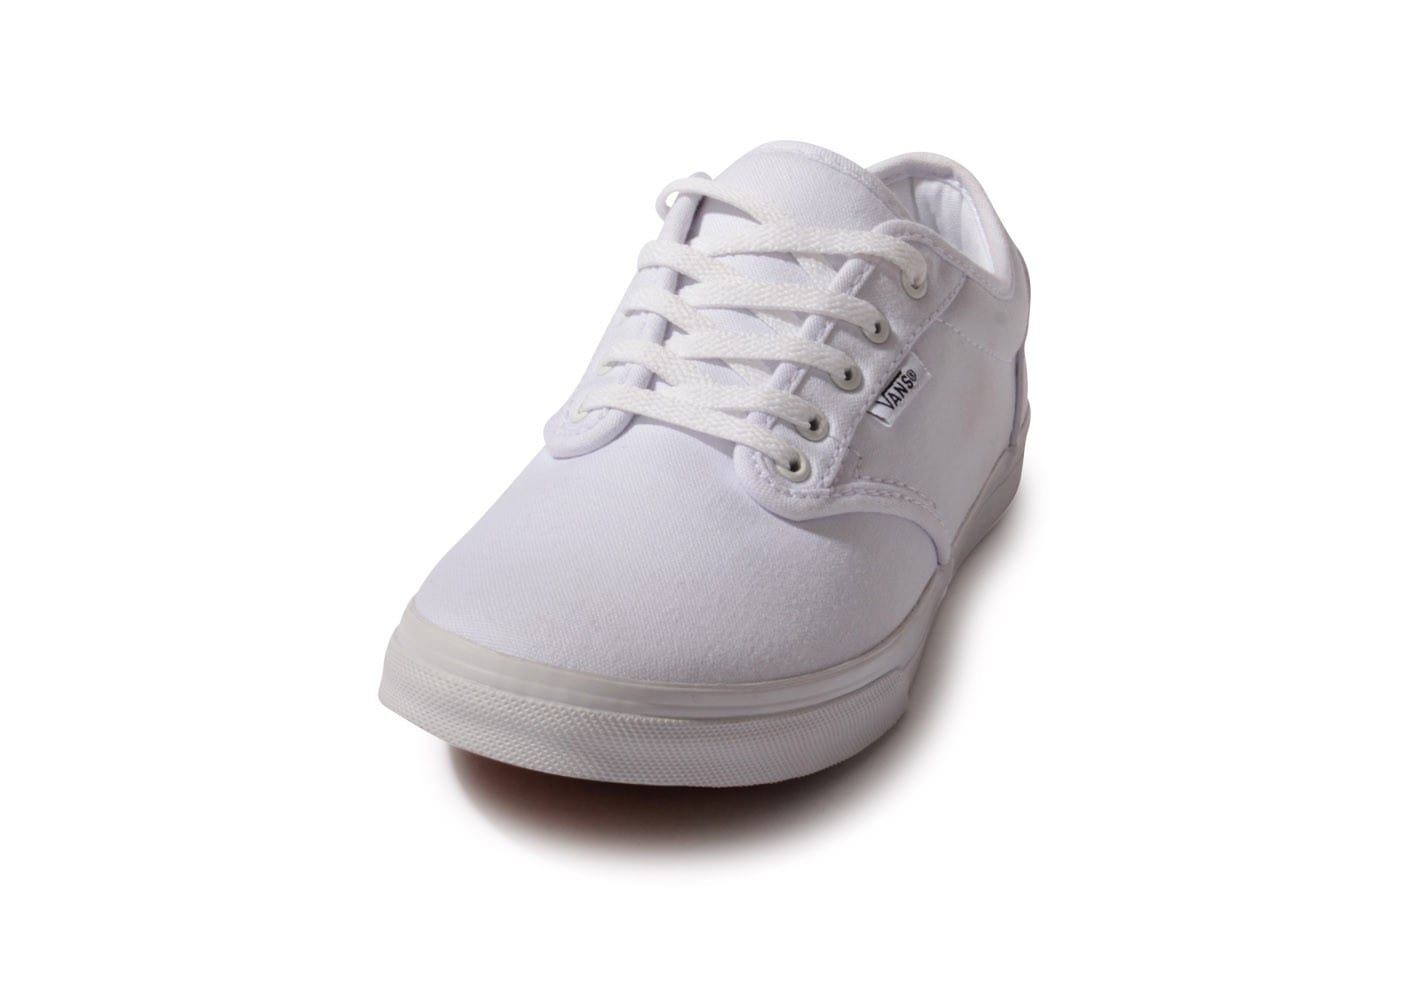 Atwood Blanche Chaussures Blanche Vans Atwood Vans Chausport